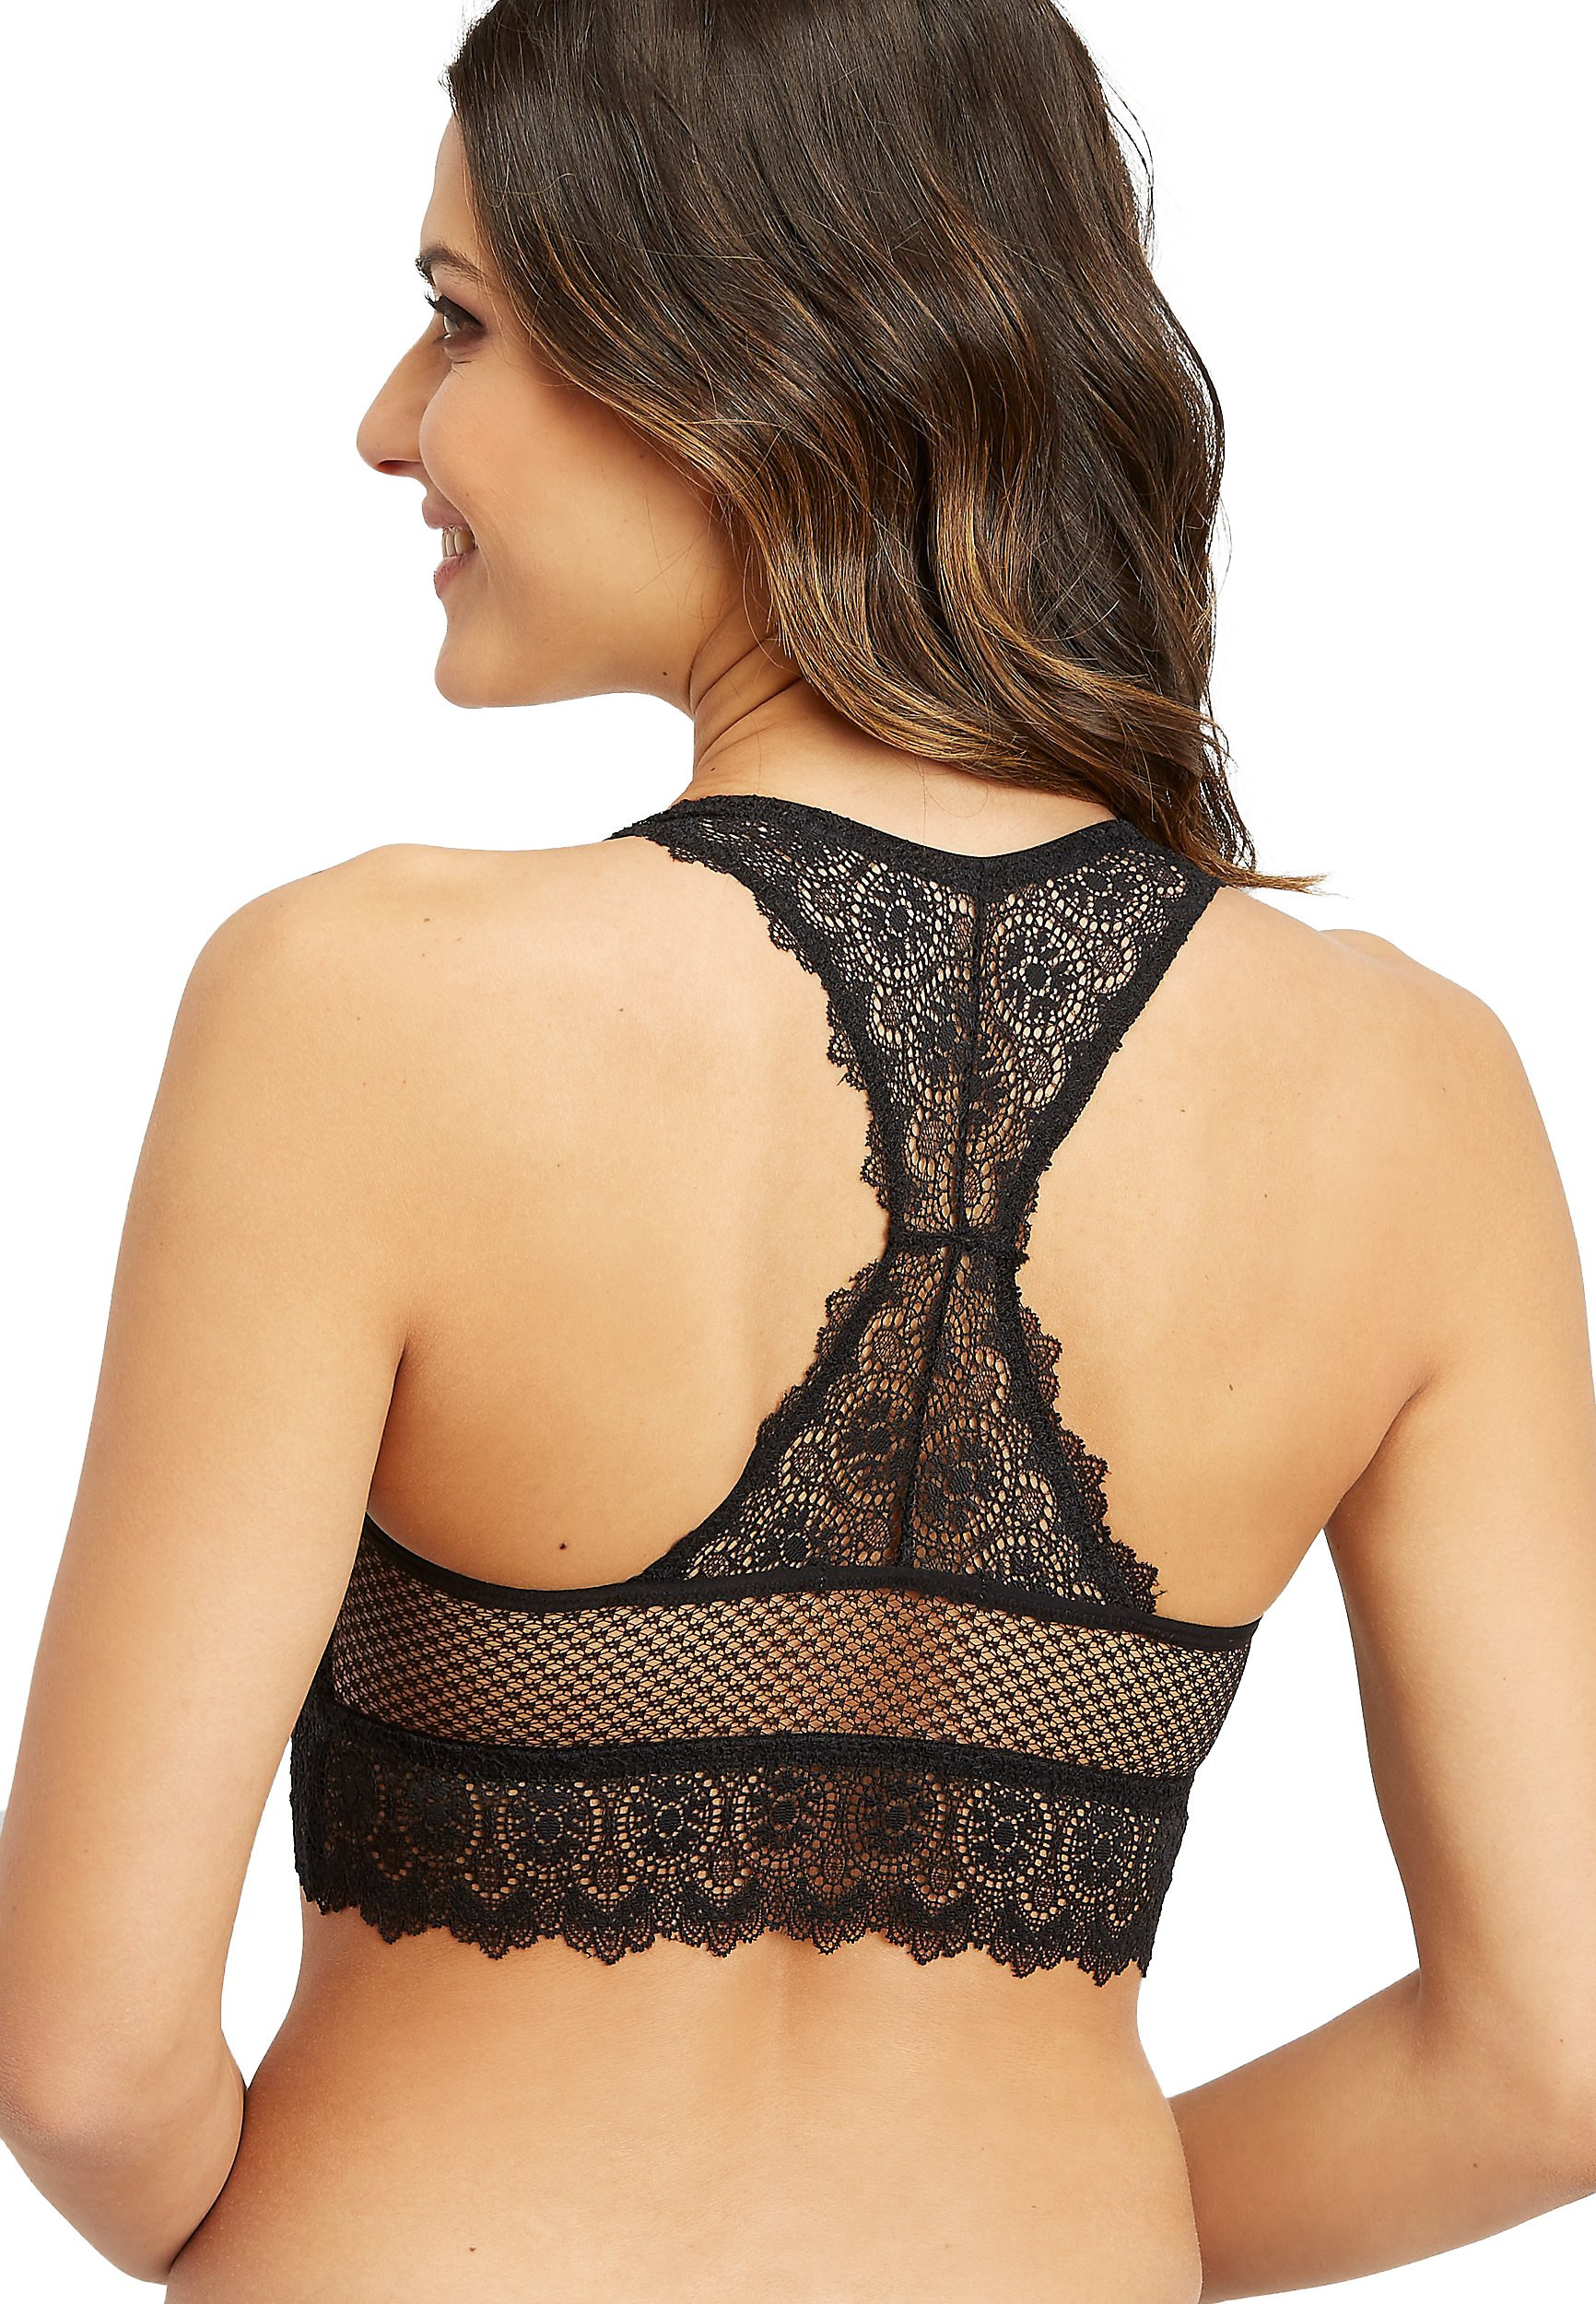 c862c5dcdf8a2 maurices - Knit Lace And Mesh Racerback Bralette - Walmart.com